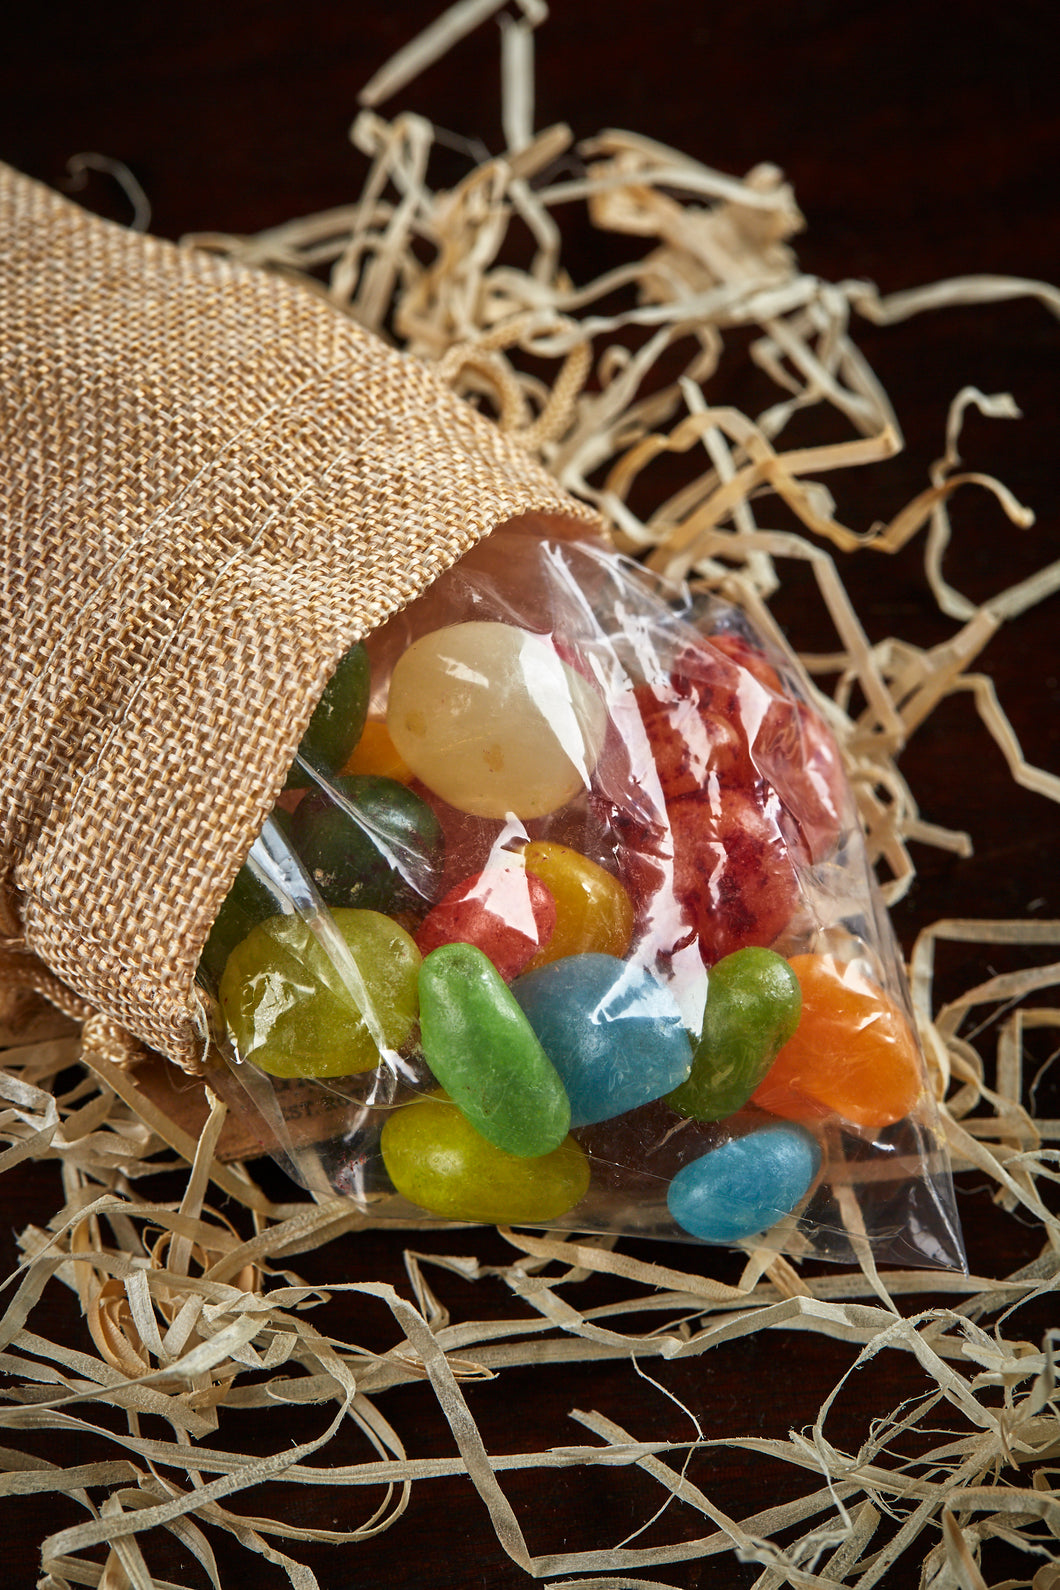 Image of Edible Magic Beans spilling out of the jute drawstring bag.